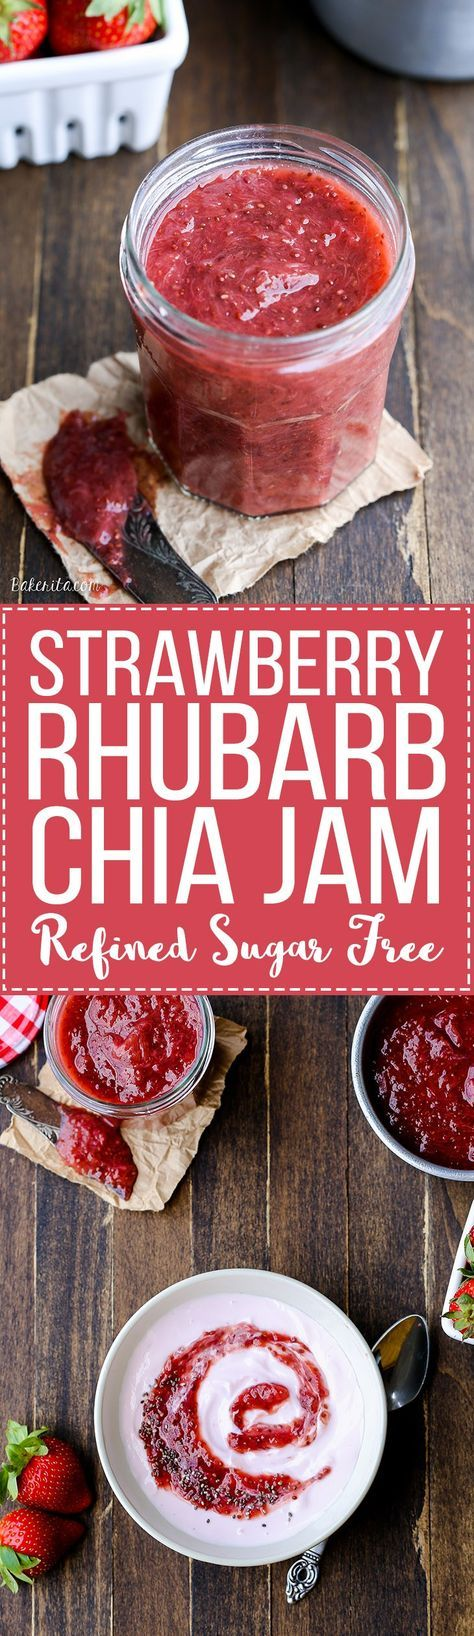 This Strawberry Rhubarb Chia Jam is refined sugar free and made without pectin - it uses chia seeds as the thickener! This easy refrigerator jam is refined sugar free, vegan and Paleo-friendly.